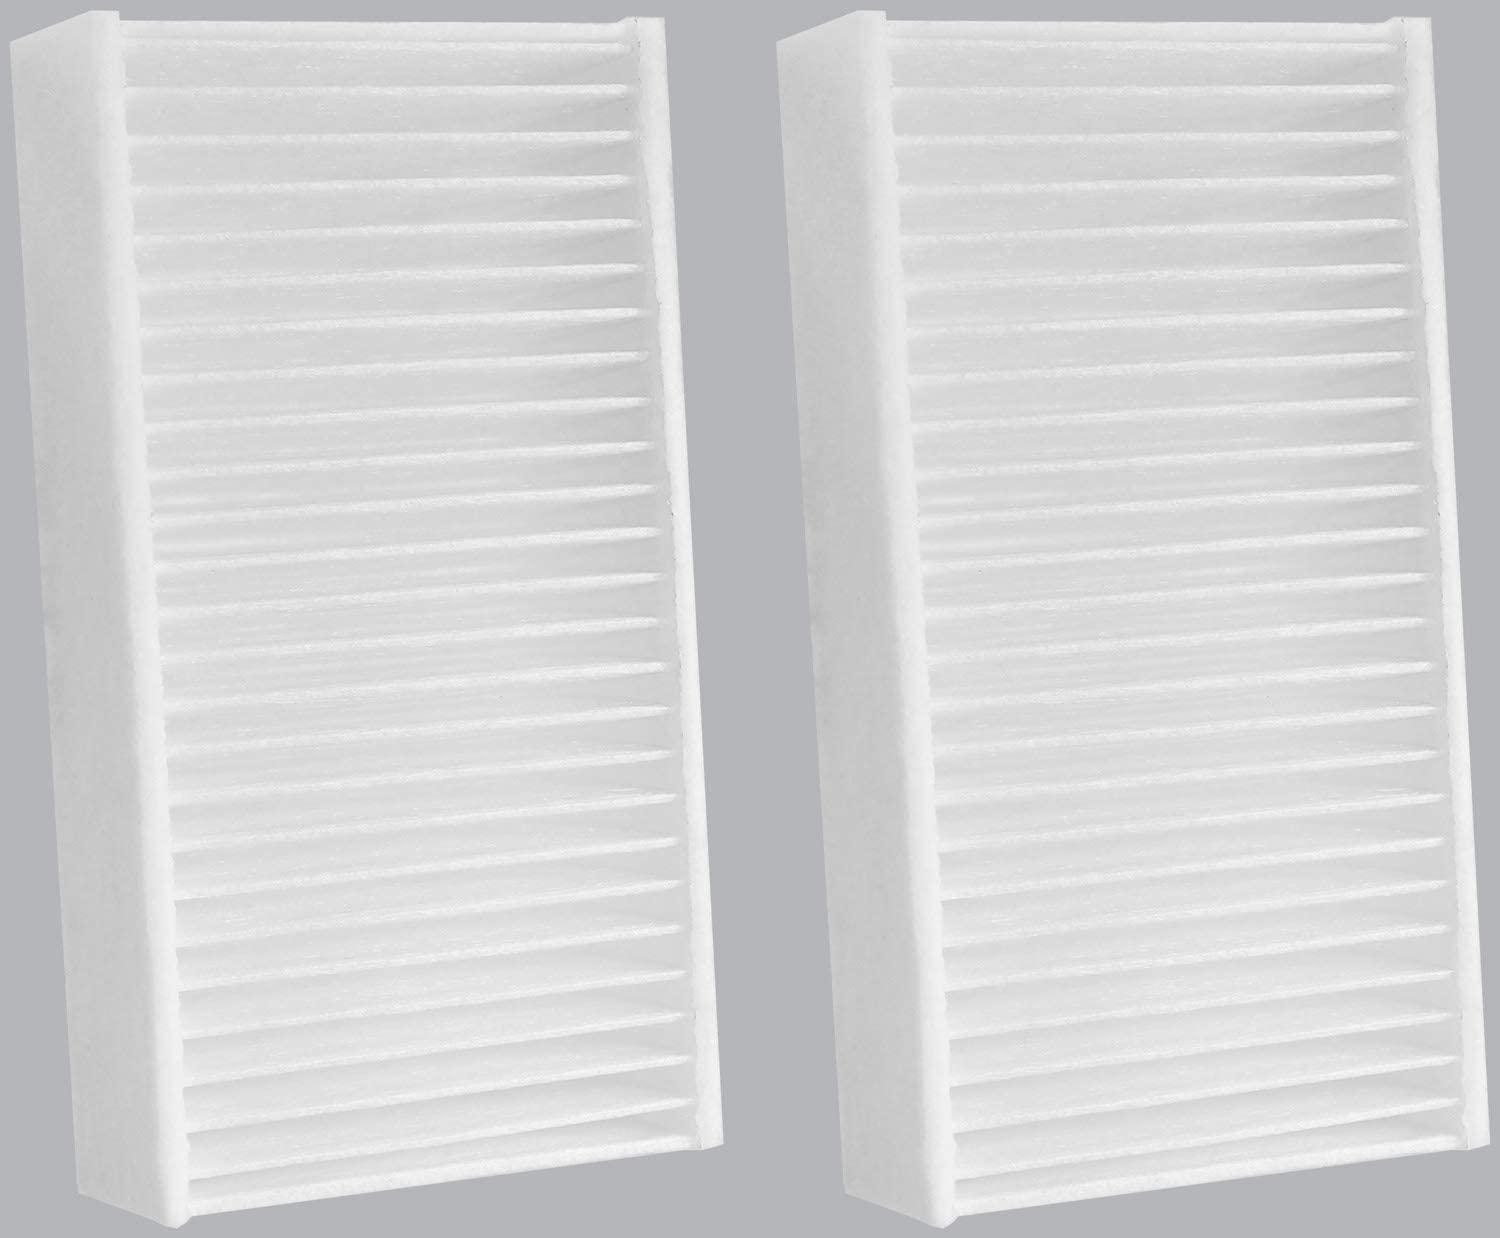 New Cabin Air Filter Now free shipping X3 X4 for X1 Max 71% OFF